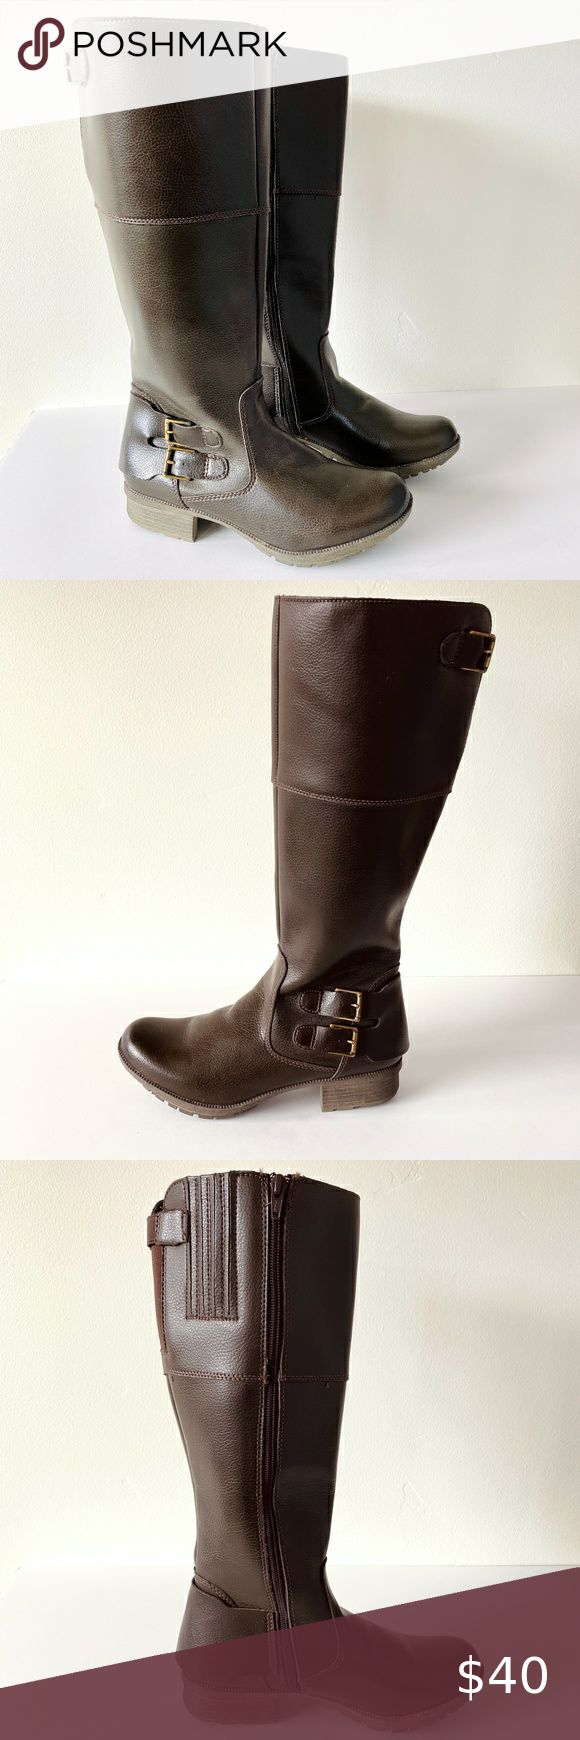 Clarks Brown Leather Knee High Riding Boot Size 8 Boots Riding Boots Shoes Women Heels [ 1740 x 580 Pixel ]